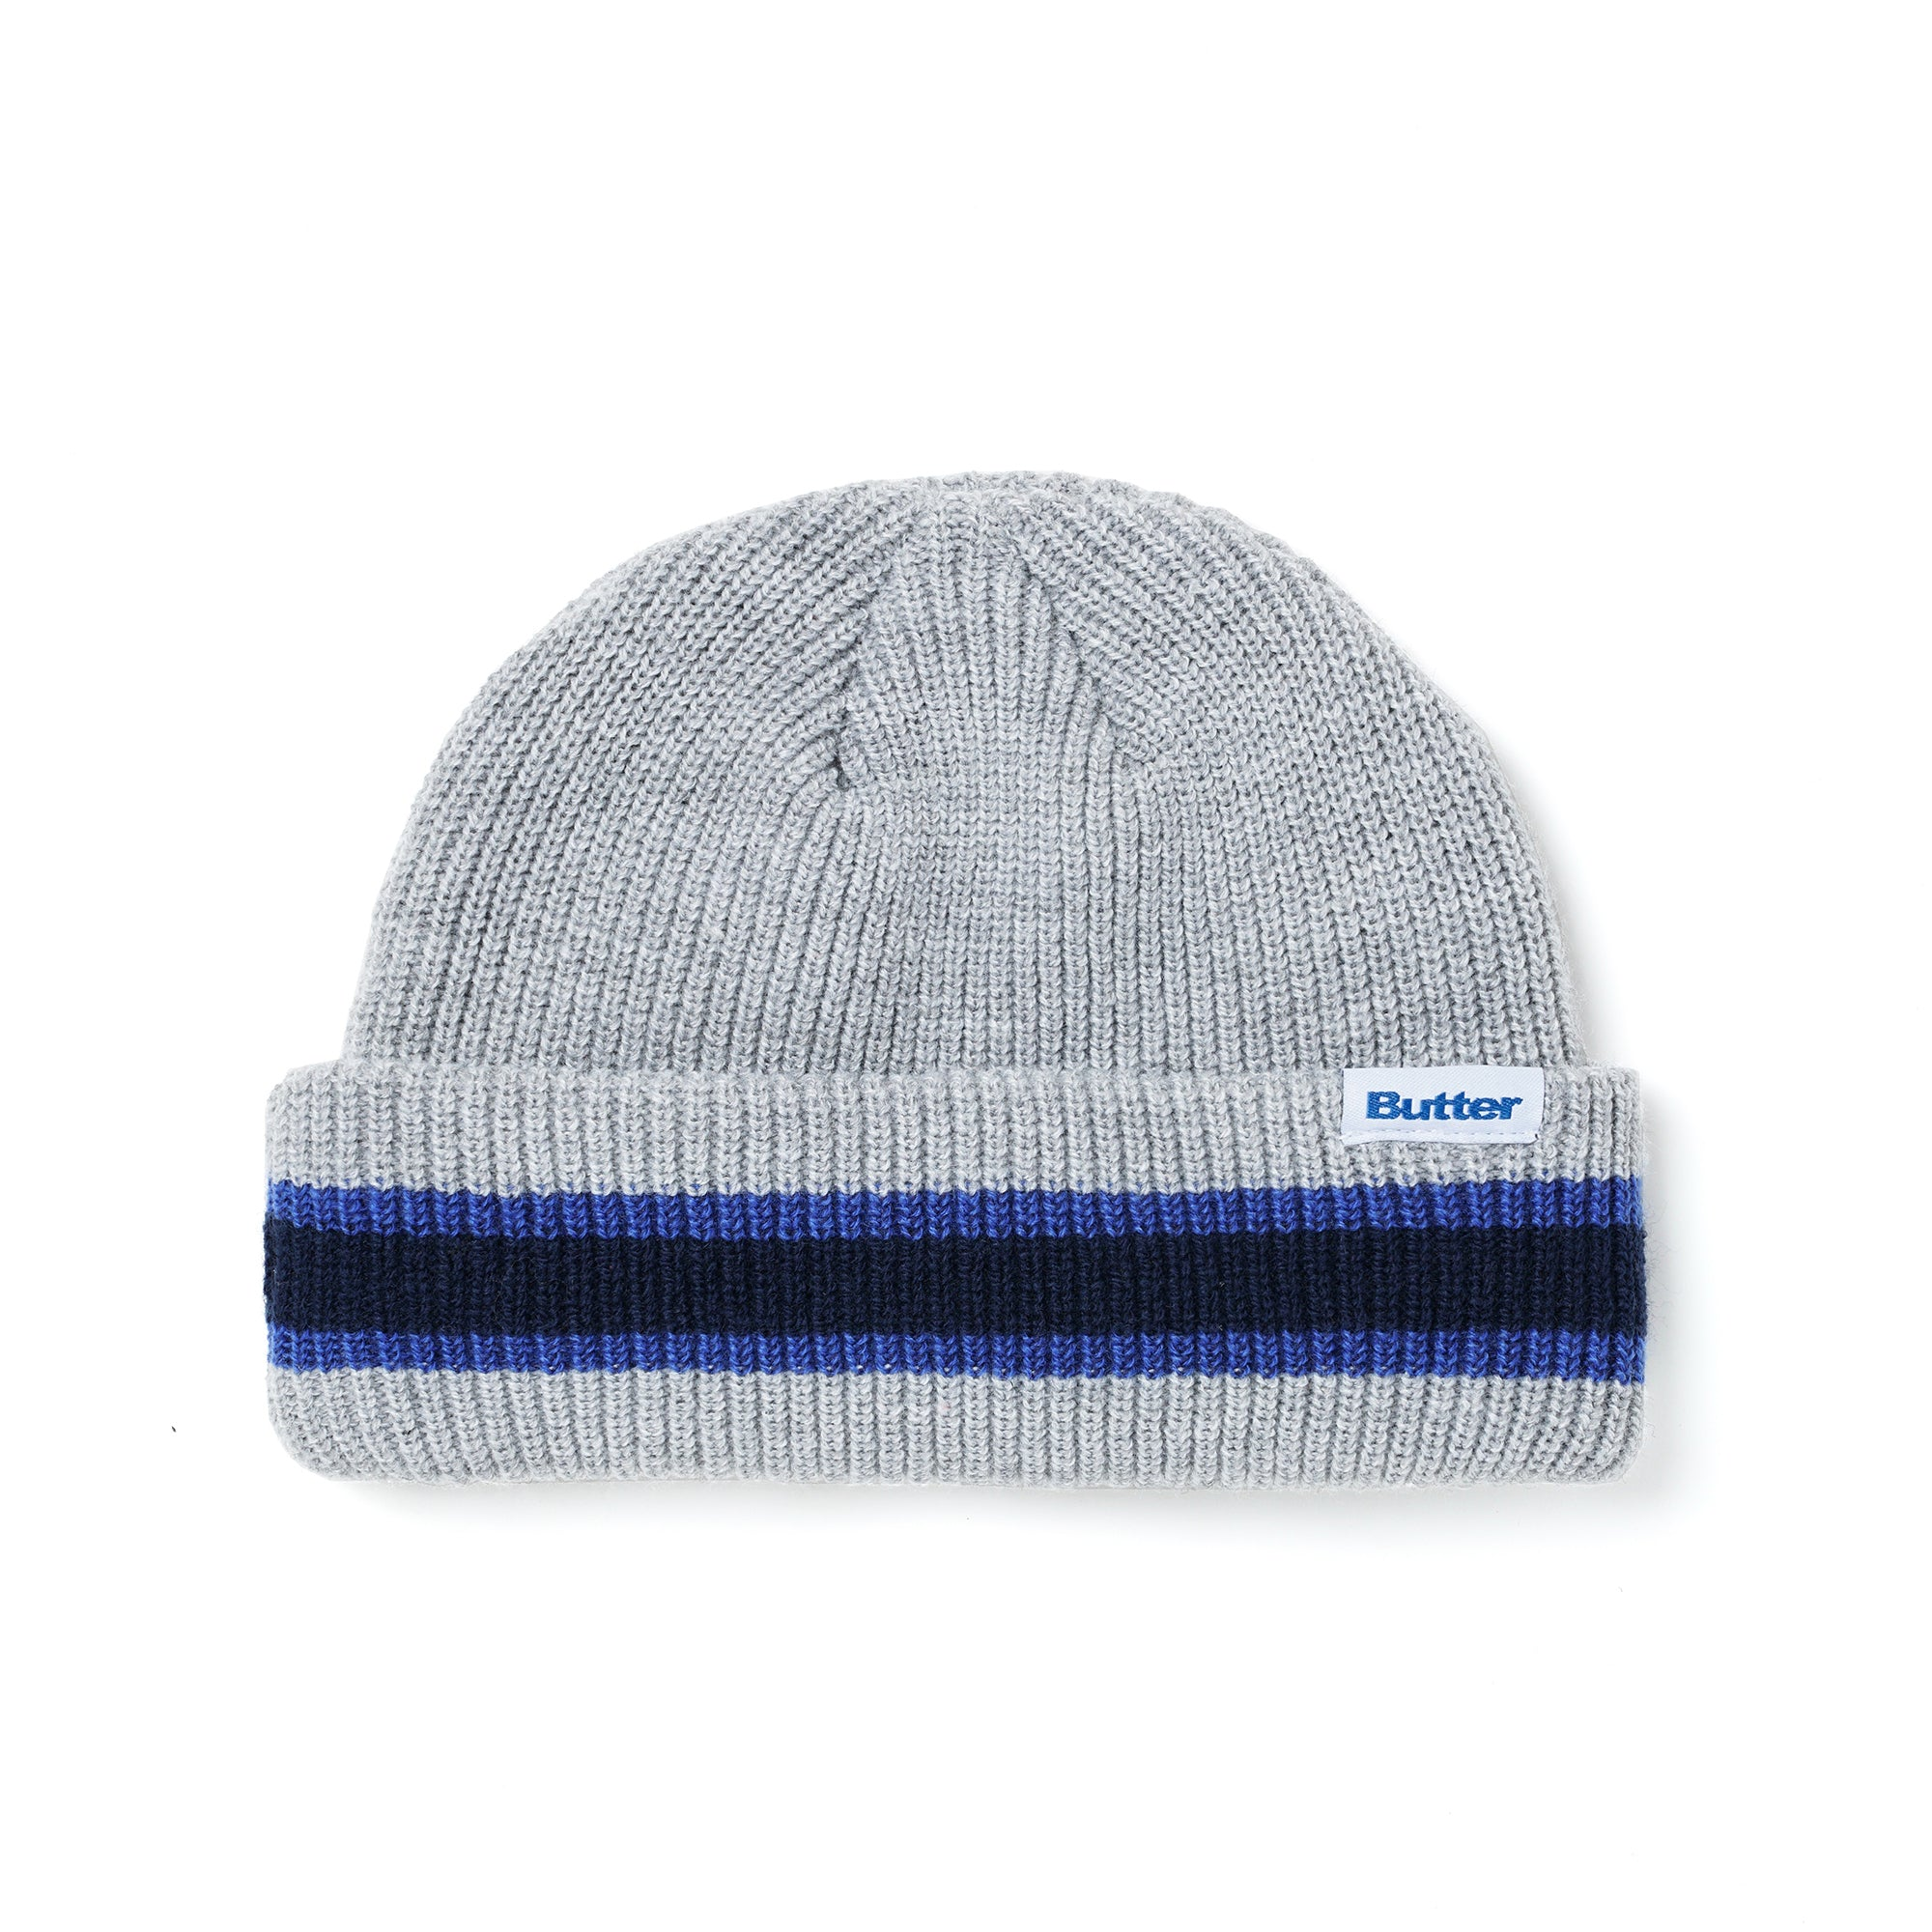 Butter Goods Knox Beanie Product Photo #1